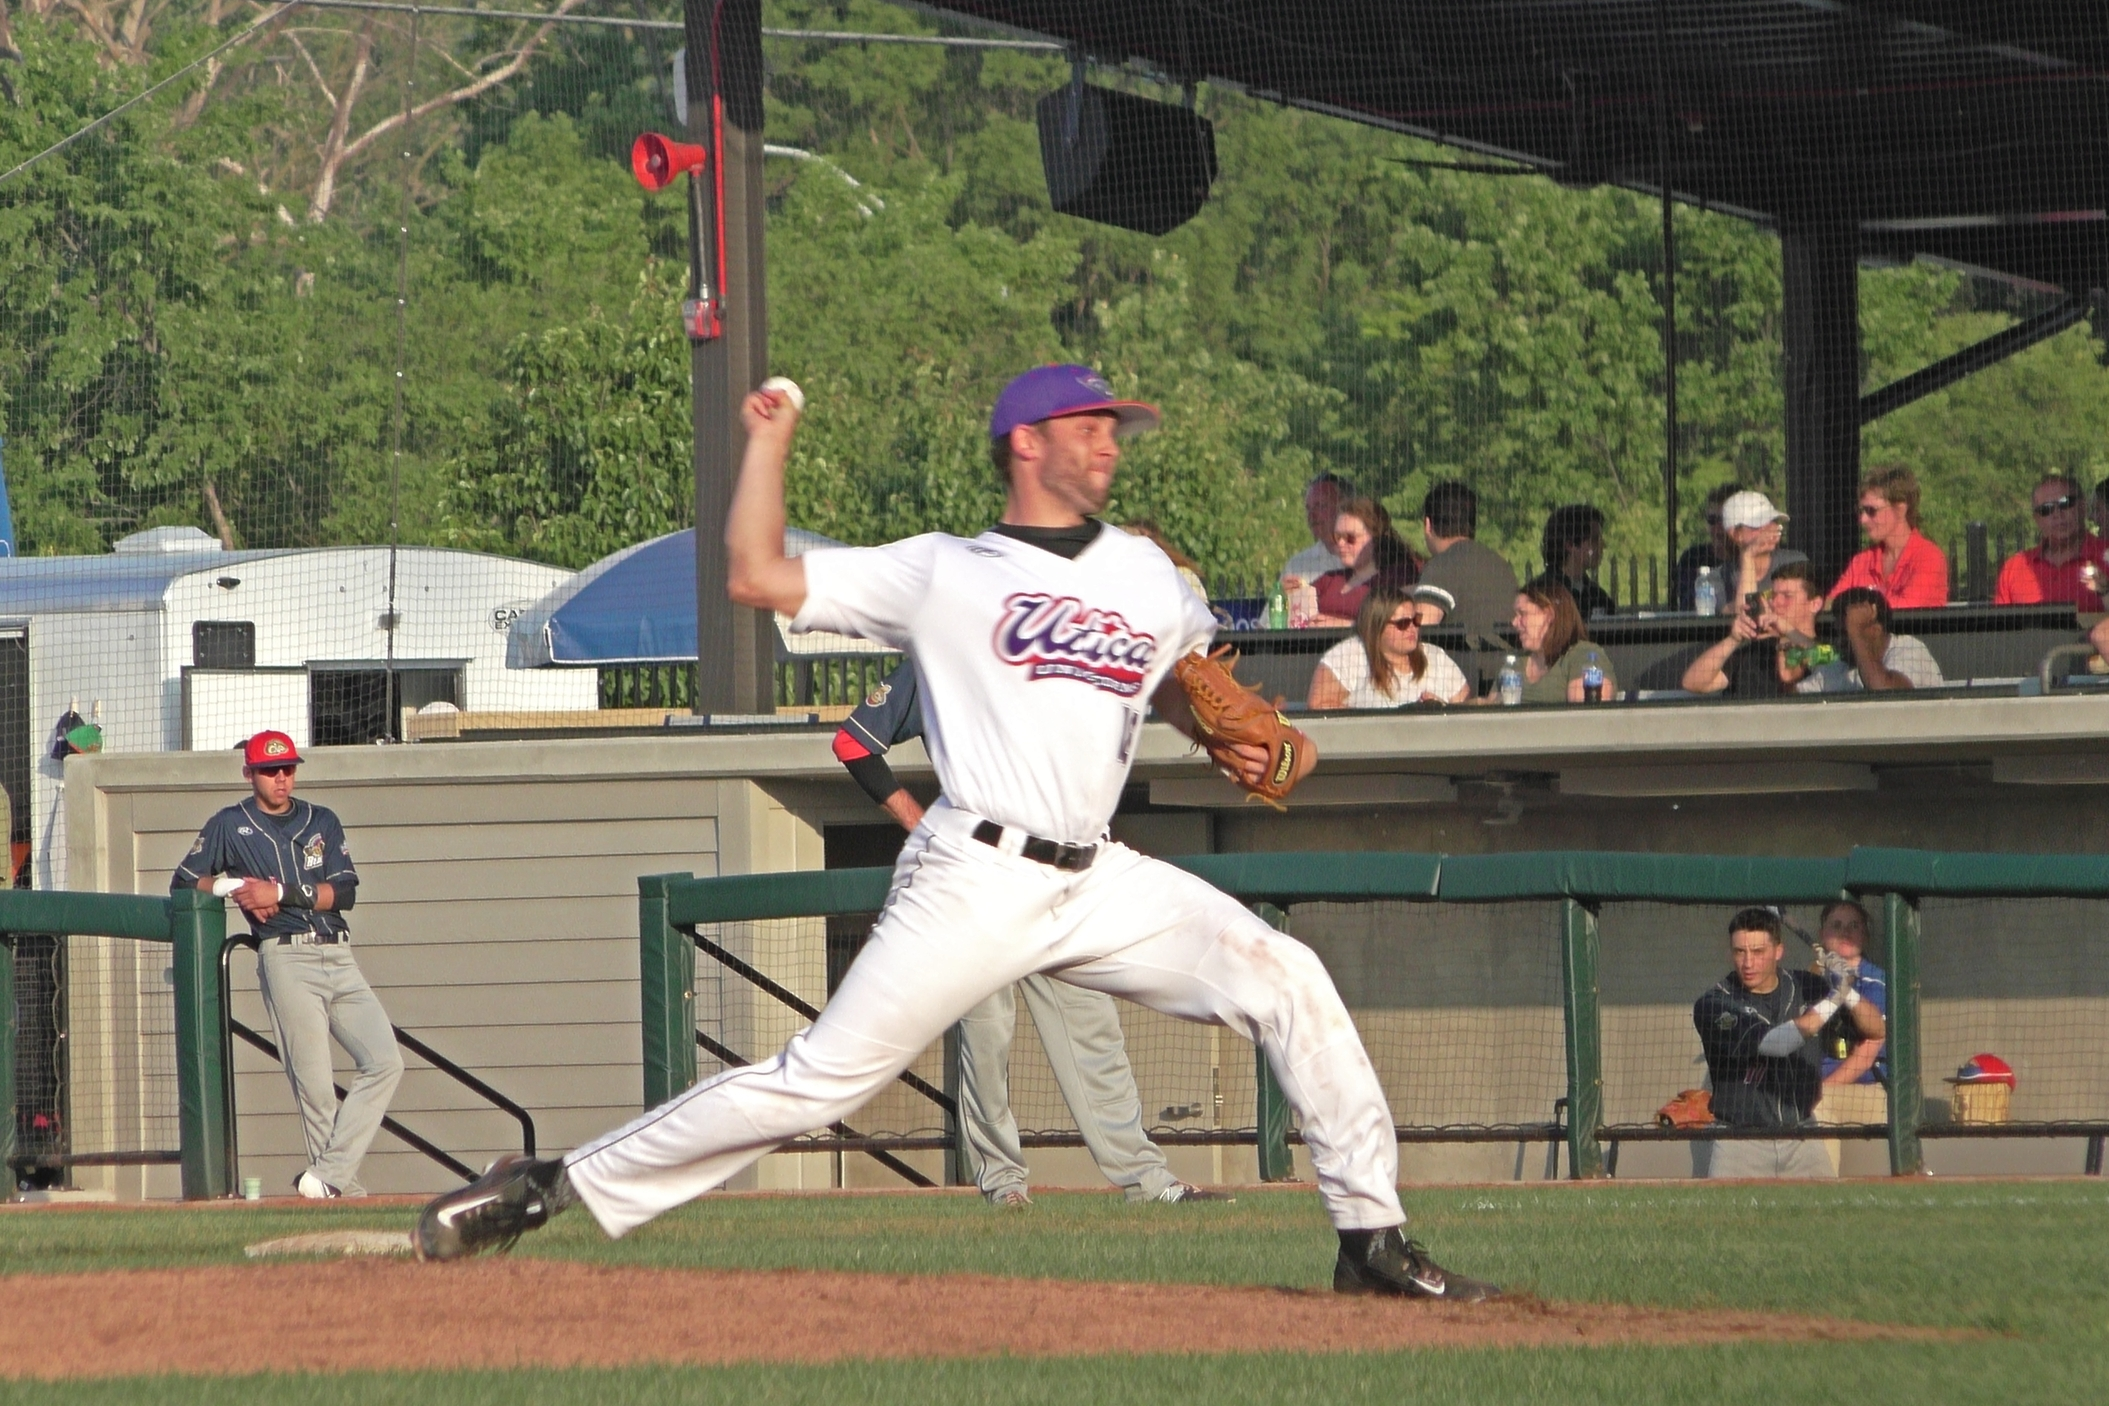 Throwing Examples - Explore bonus footage of USPBL Player's demonstrating various aspects of the program.